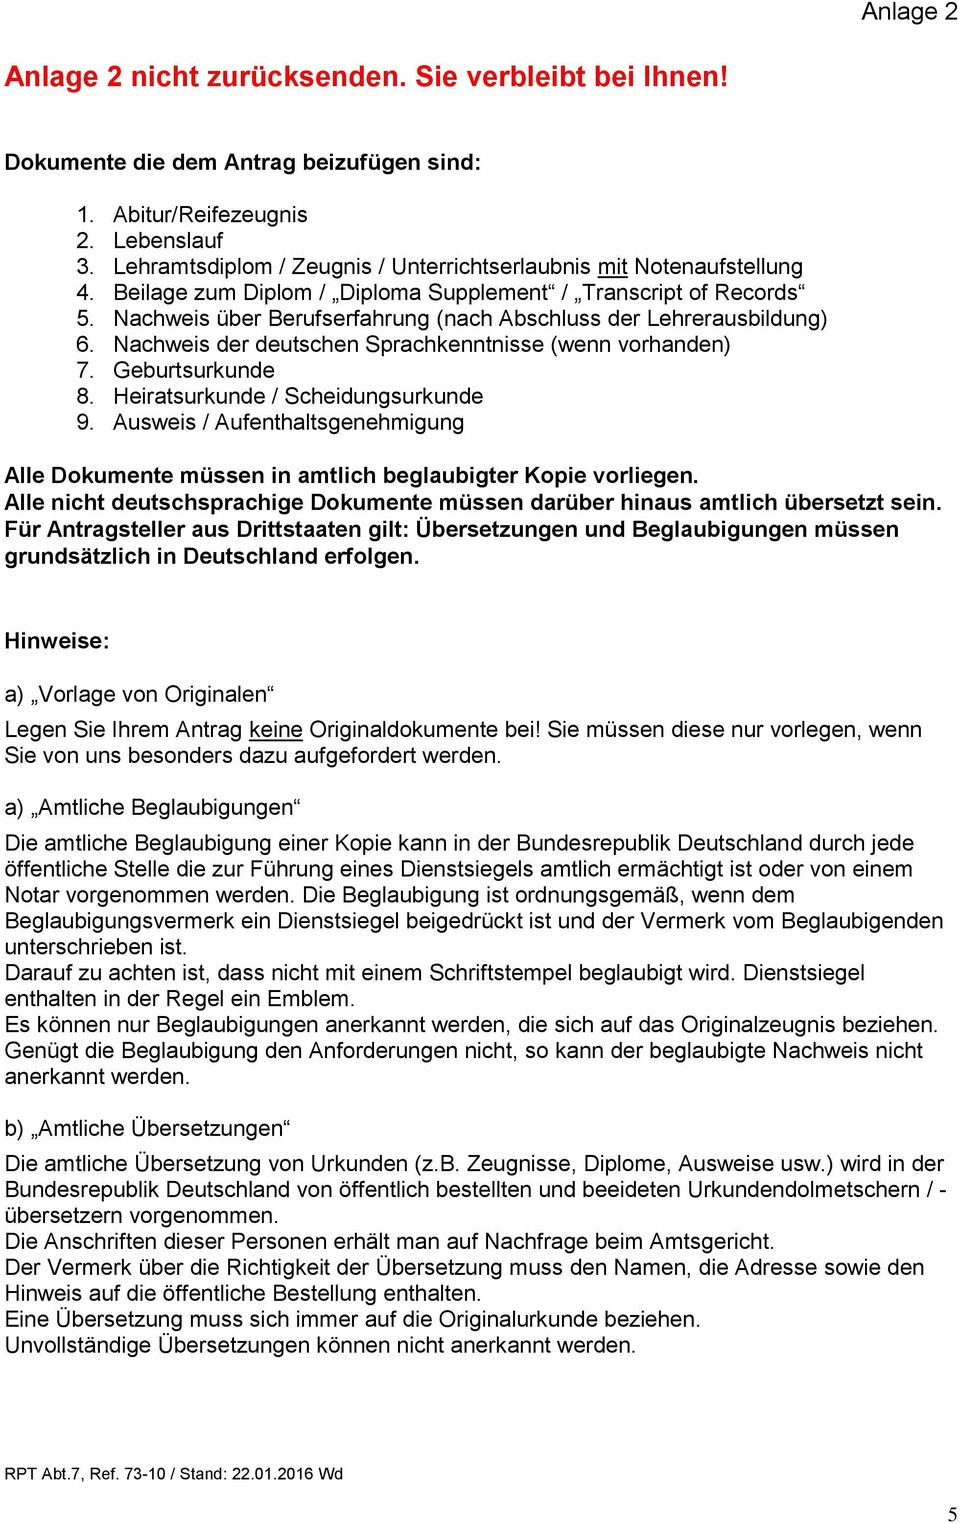 Charmant Welpen Geburtsurkunde Vorlage Bilder - Entry Level Resume ...